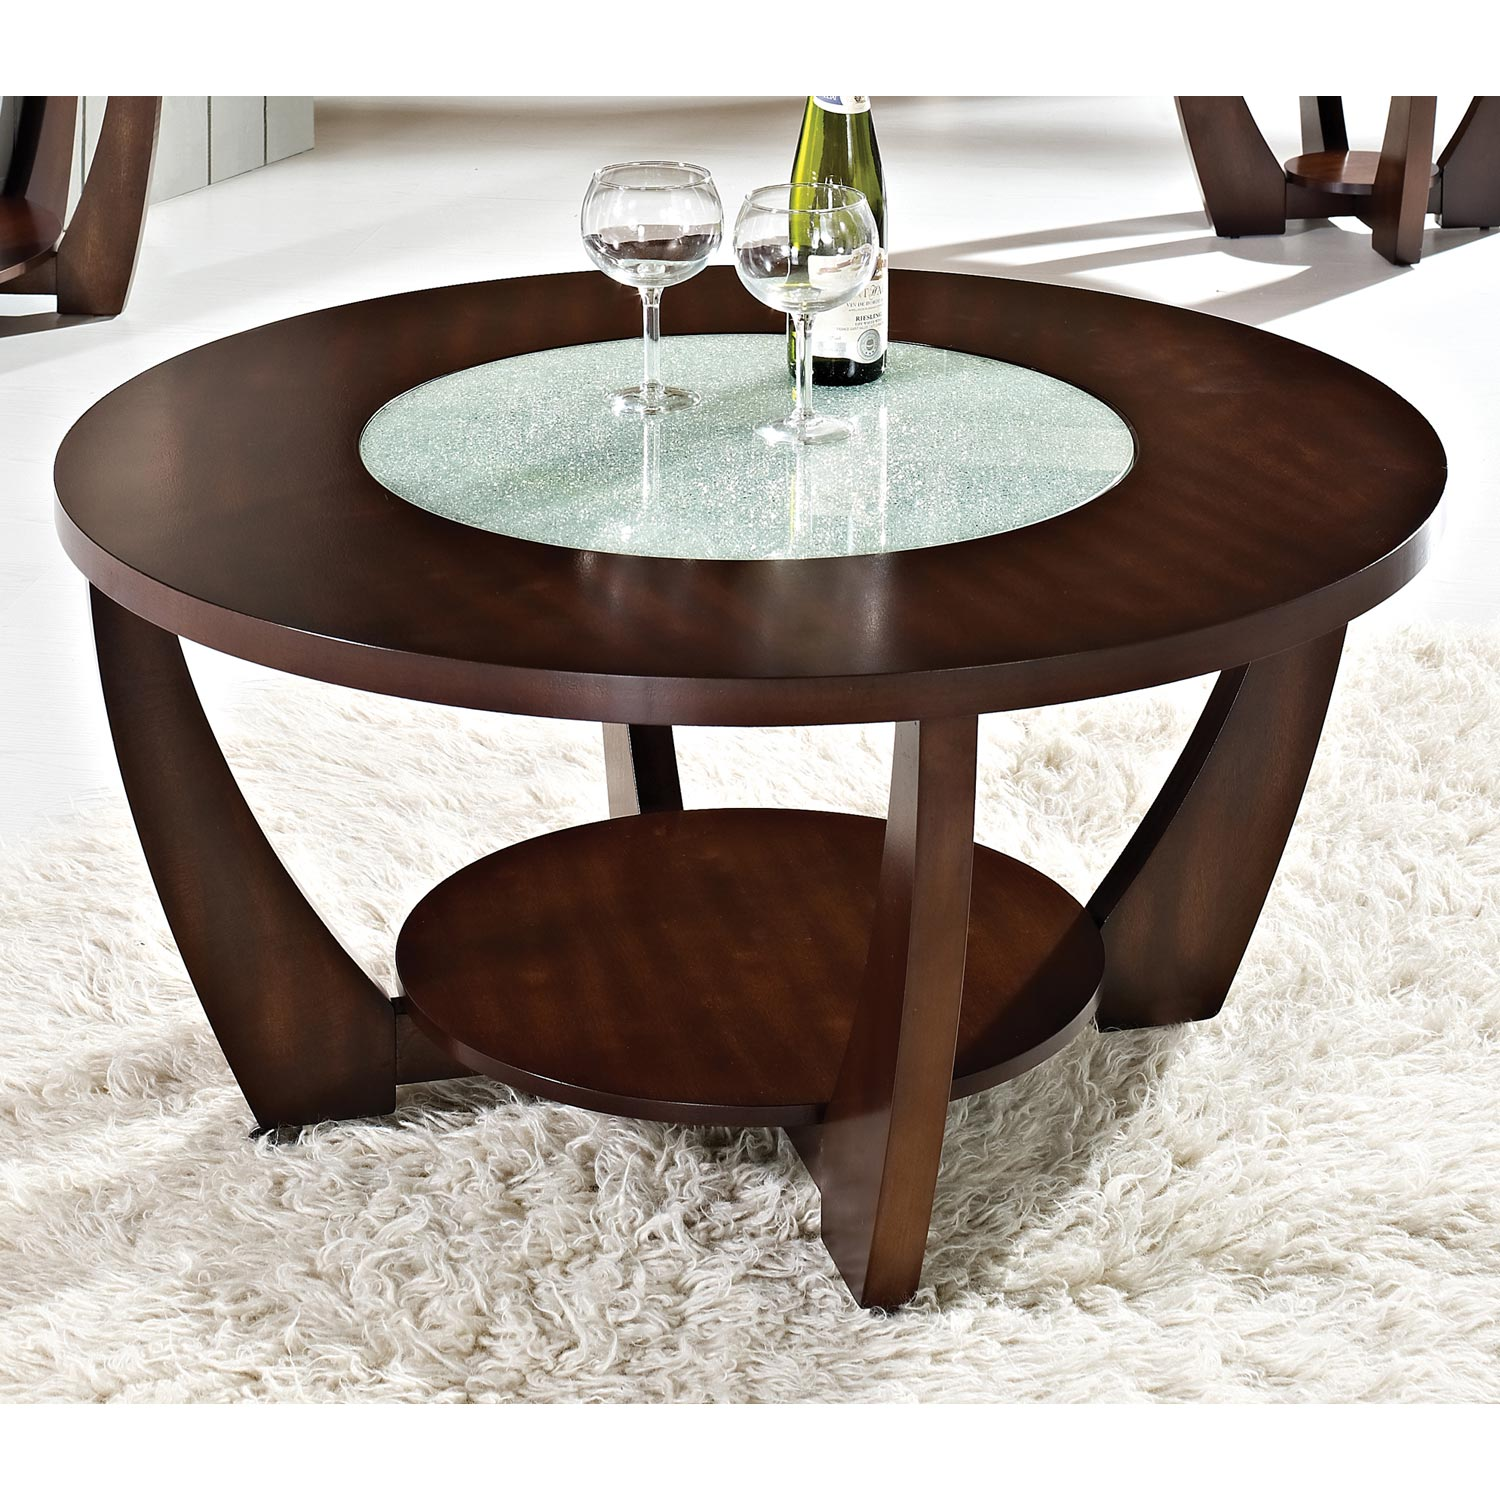 Rafael round coffee table crackled glass dark cherry wood dcg stores Coffee table cherry